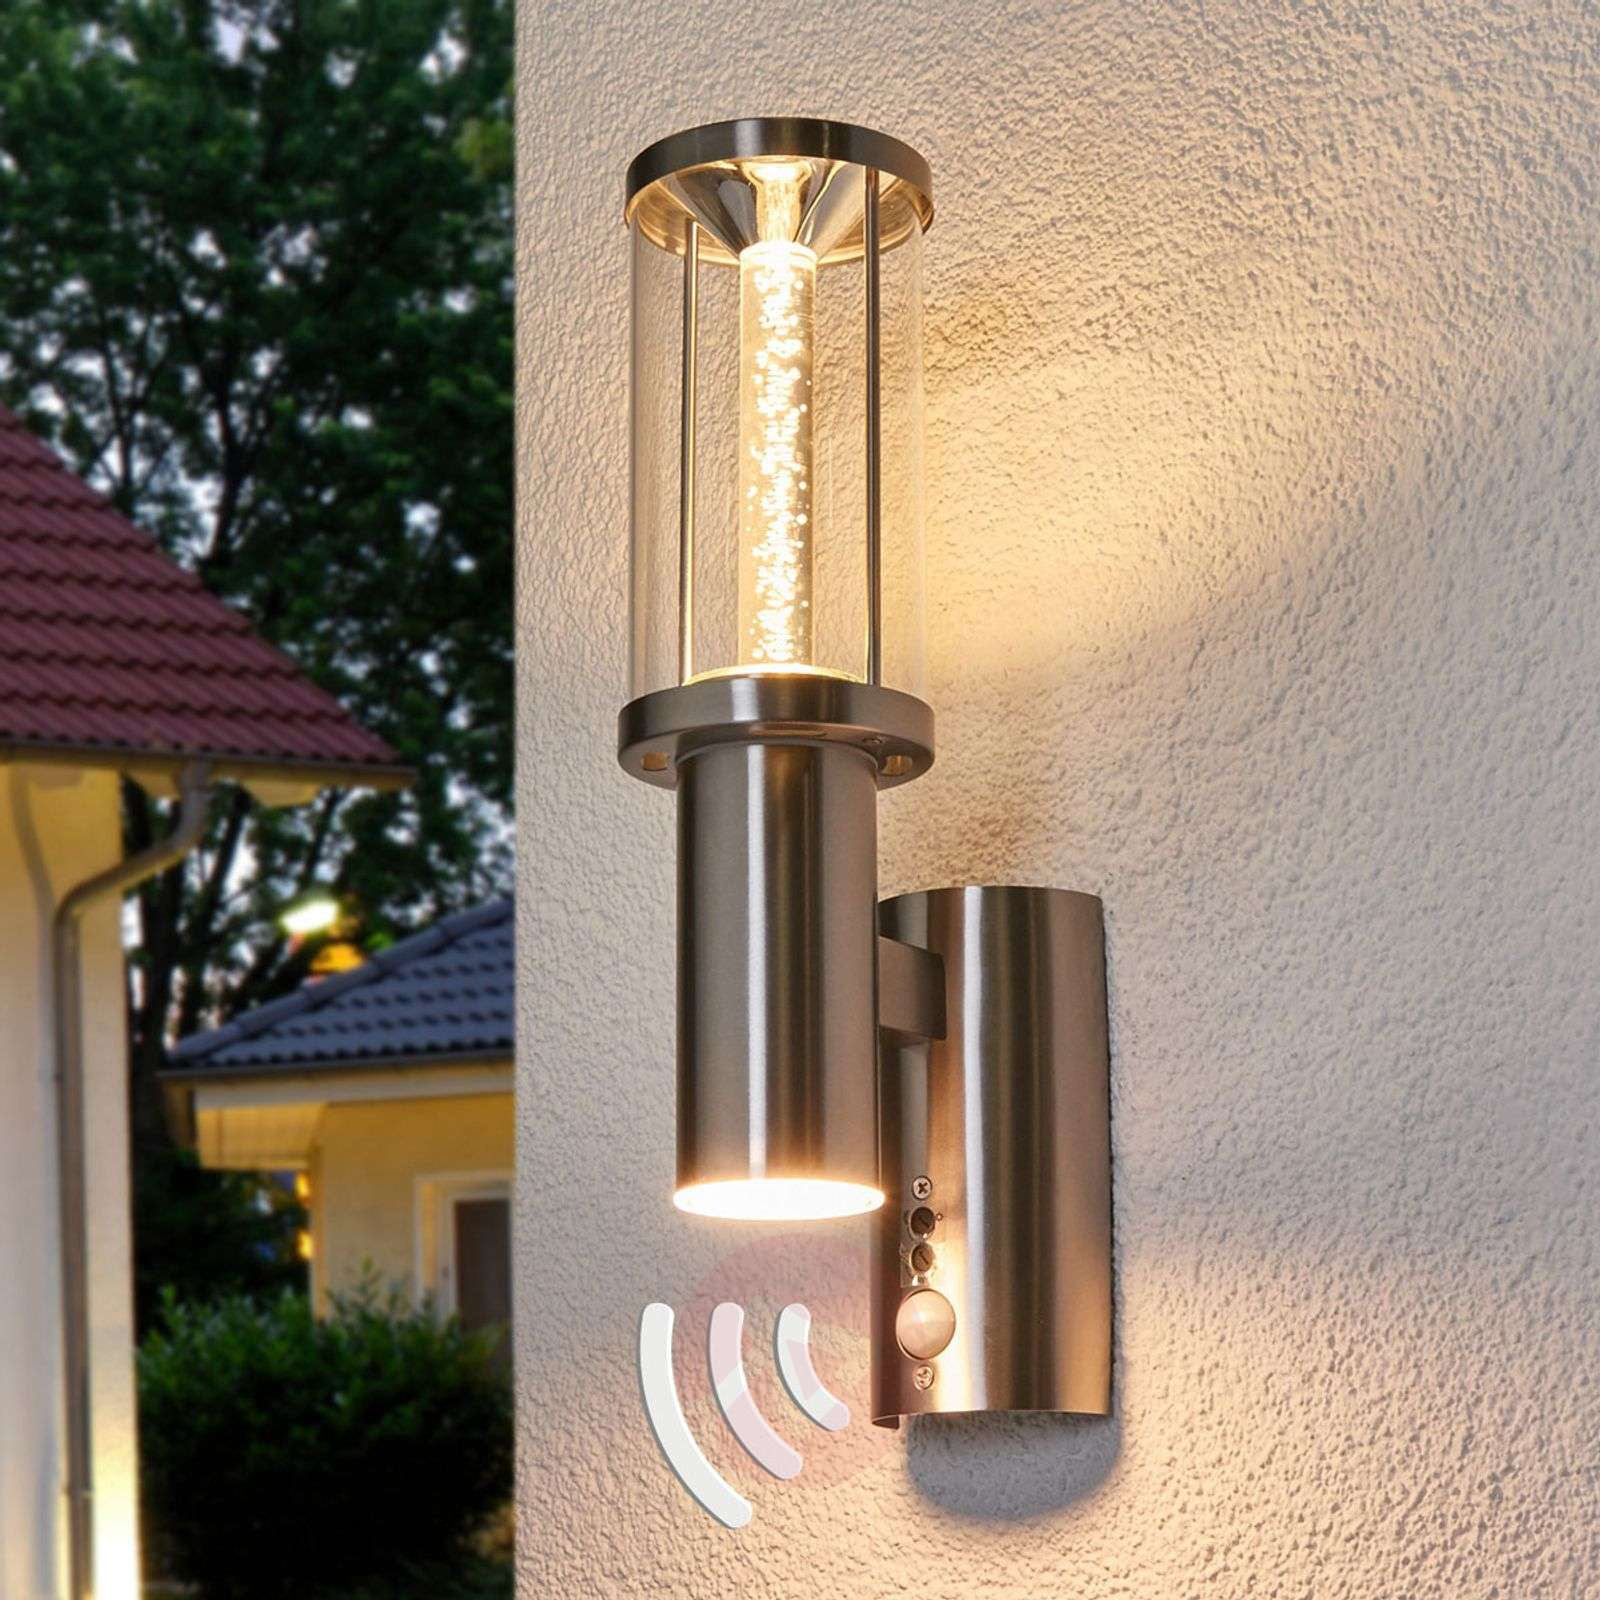 Decorative Outdoor Lighting: Decorative LED Outdoor Light Trono Stick With PIR